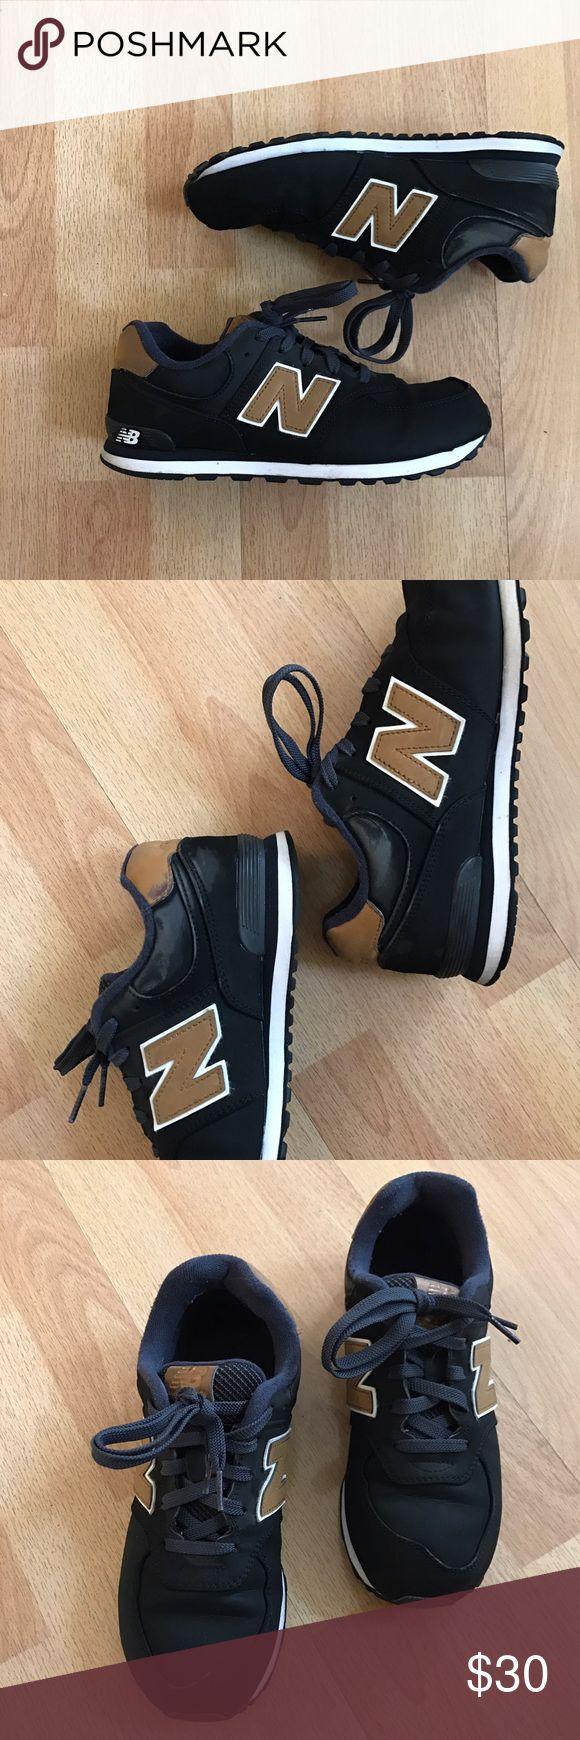 574 New Balances Black new balances with hints of tan and blue. Photos show areas of wear. Will gladly show more photos of the condition of the shoe upon request! Shoe is pre-loved but is still in great condition. Size 5.5 in kids but fits like a 7 in women's! Make me an offer! :) New Balance Shoes Sneakers